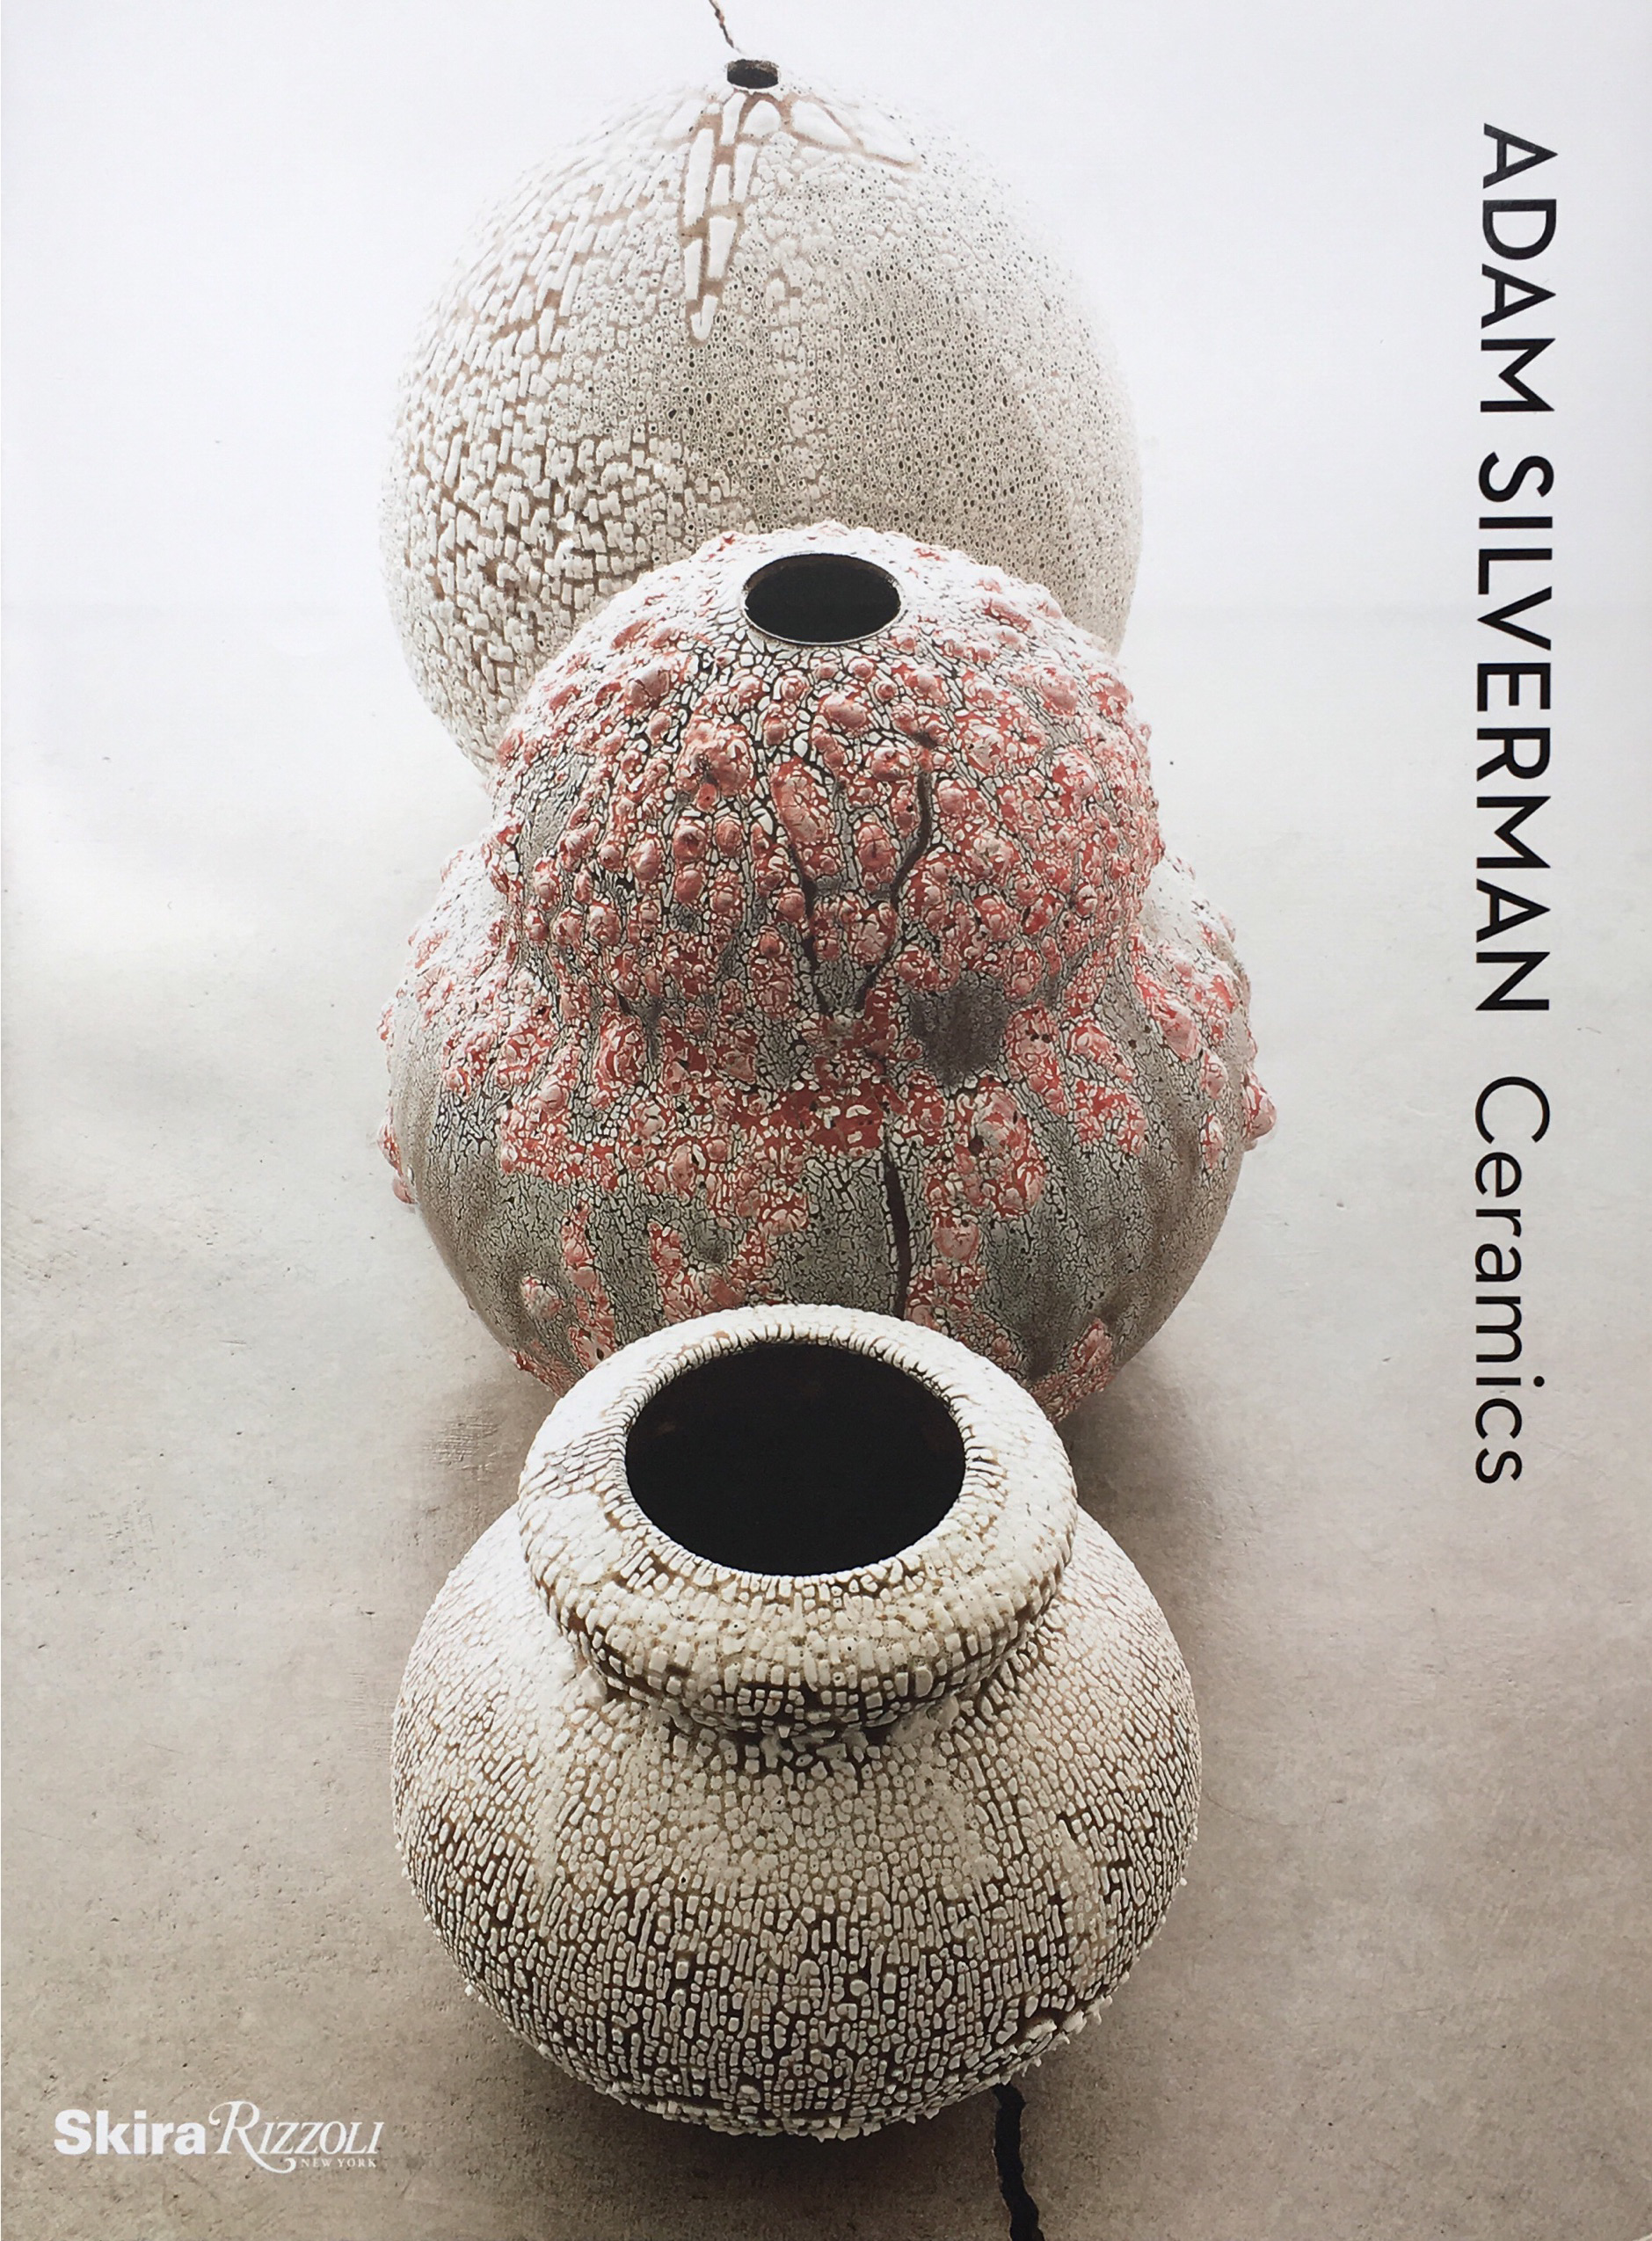 Adam Silverman Ceramics